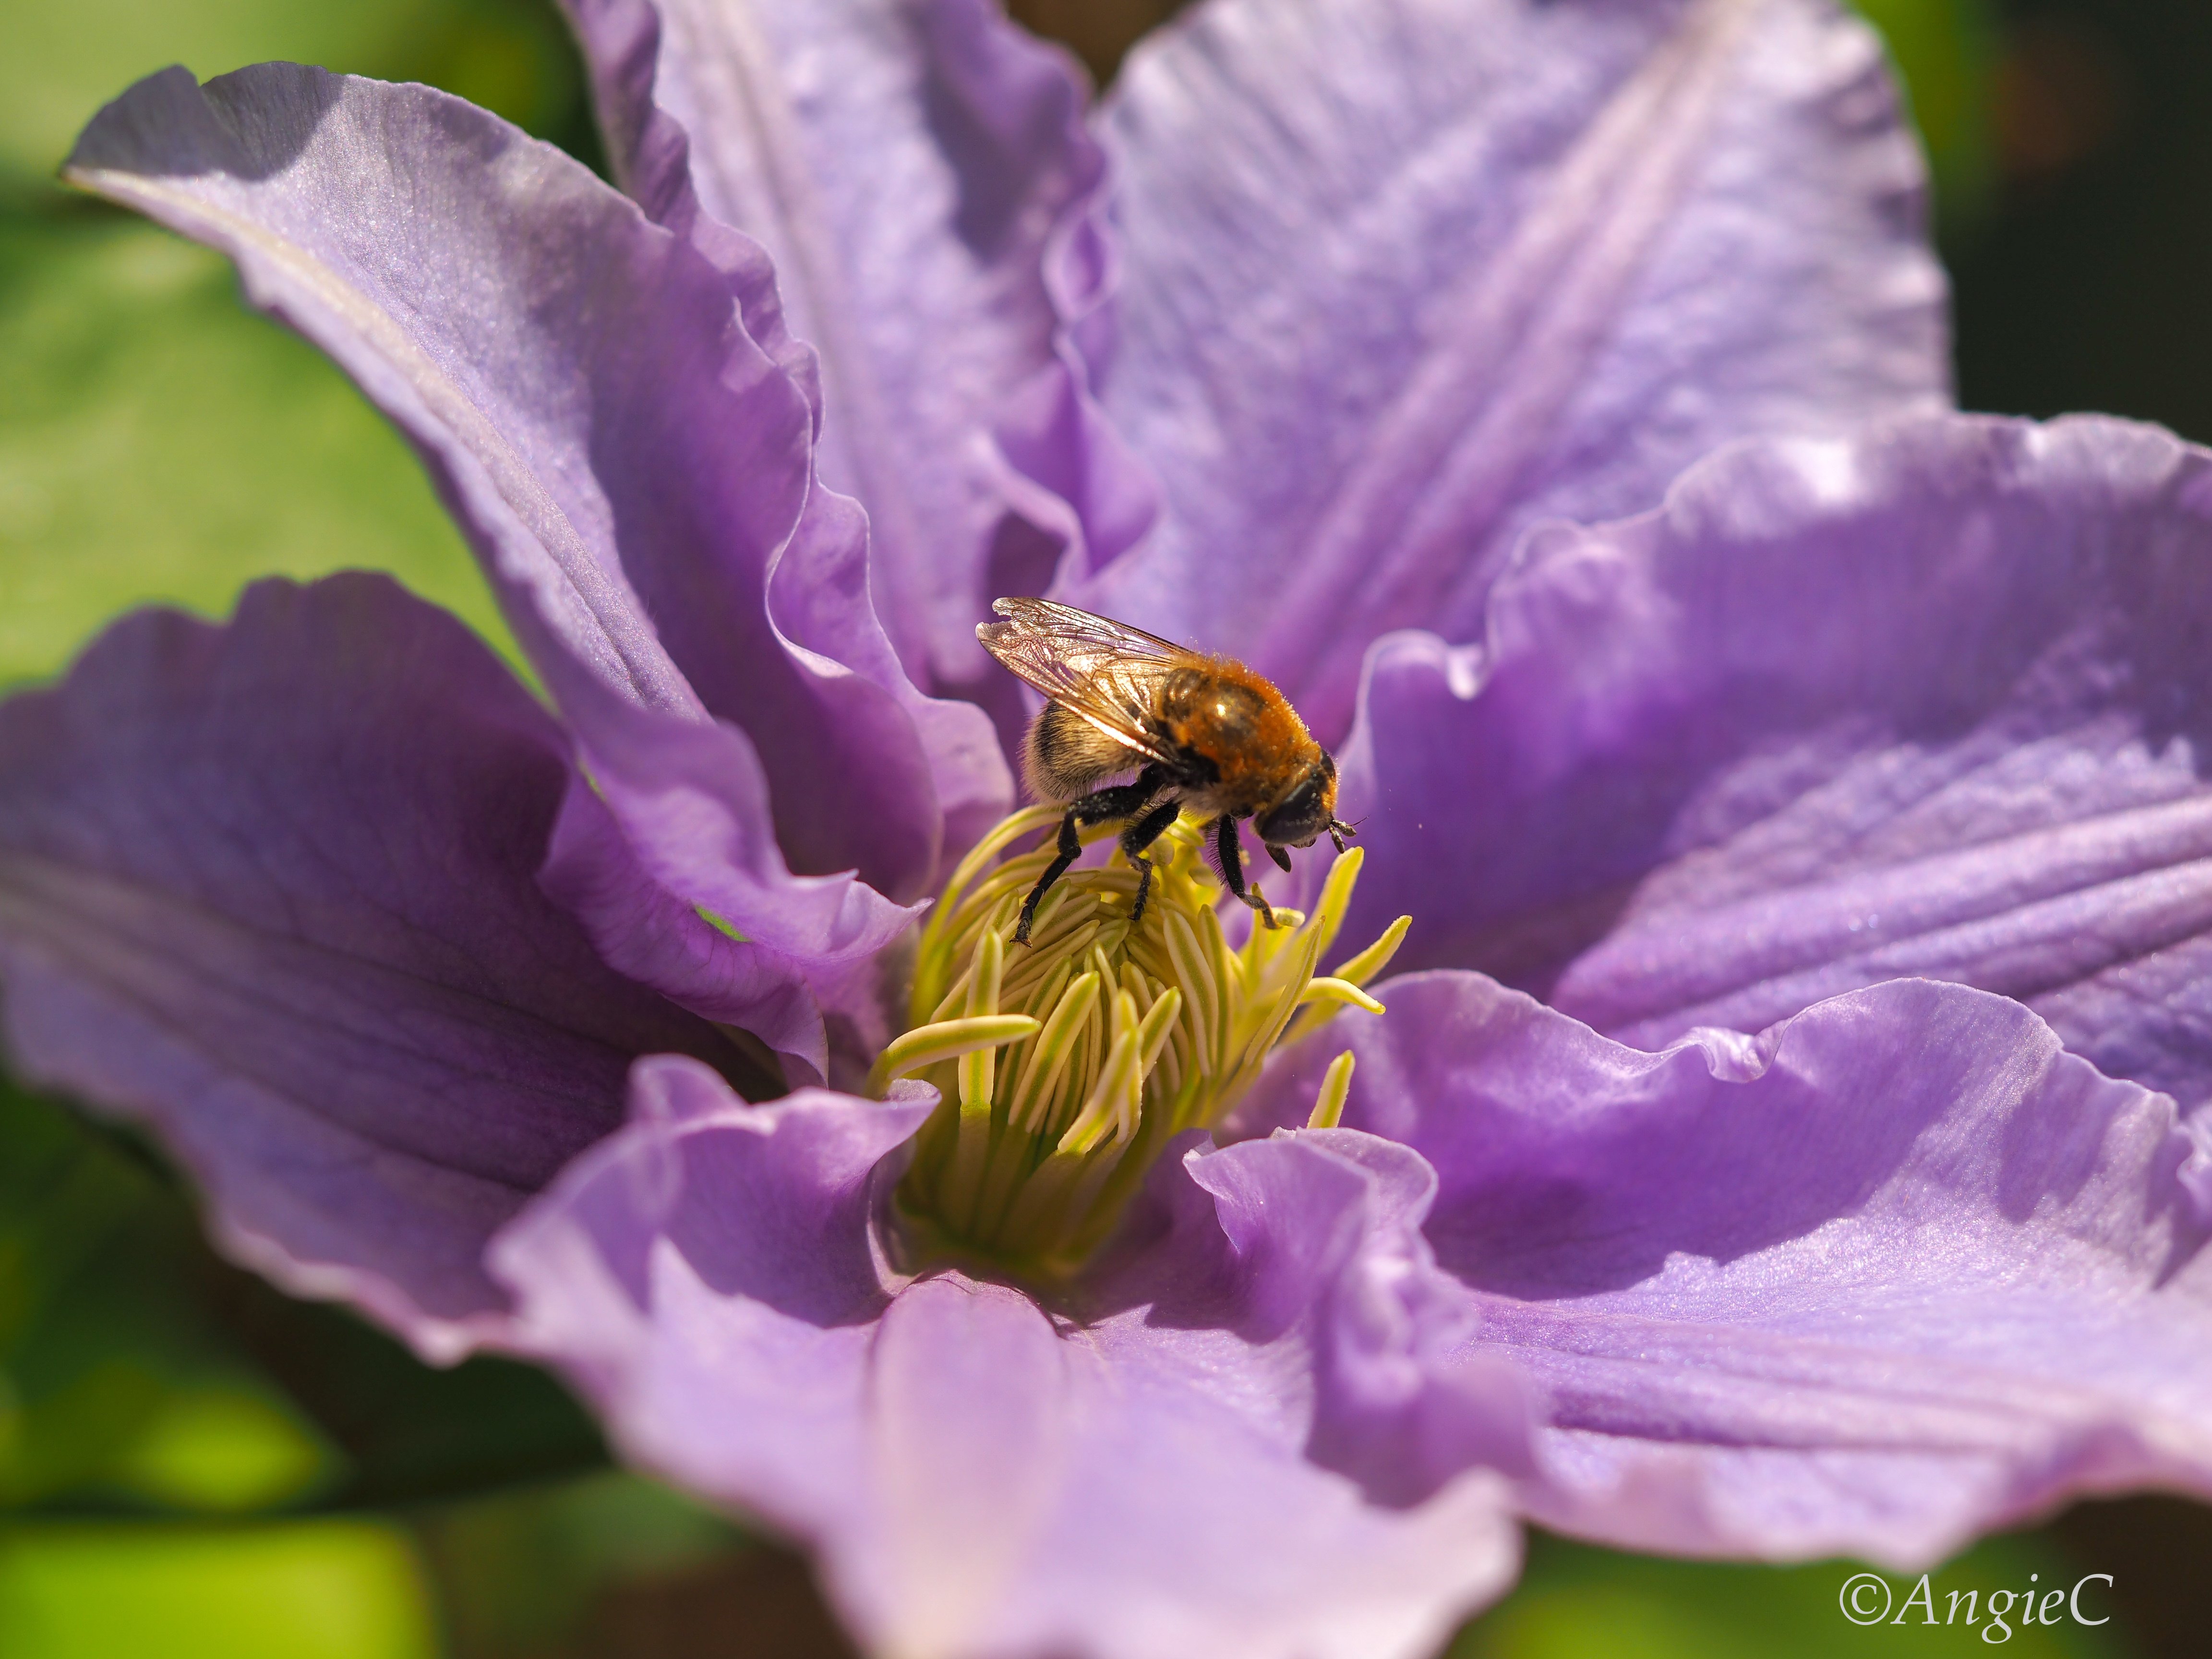 Honey bee on a Clematis flower